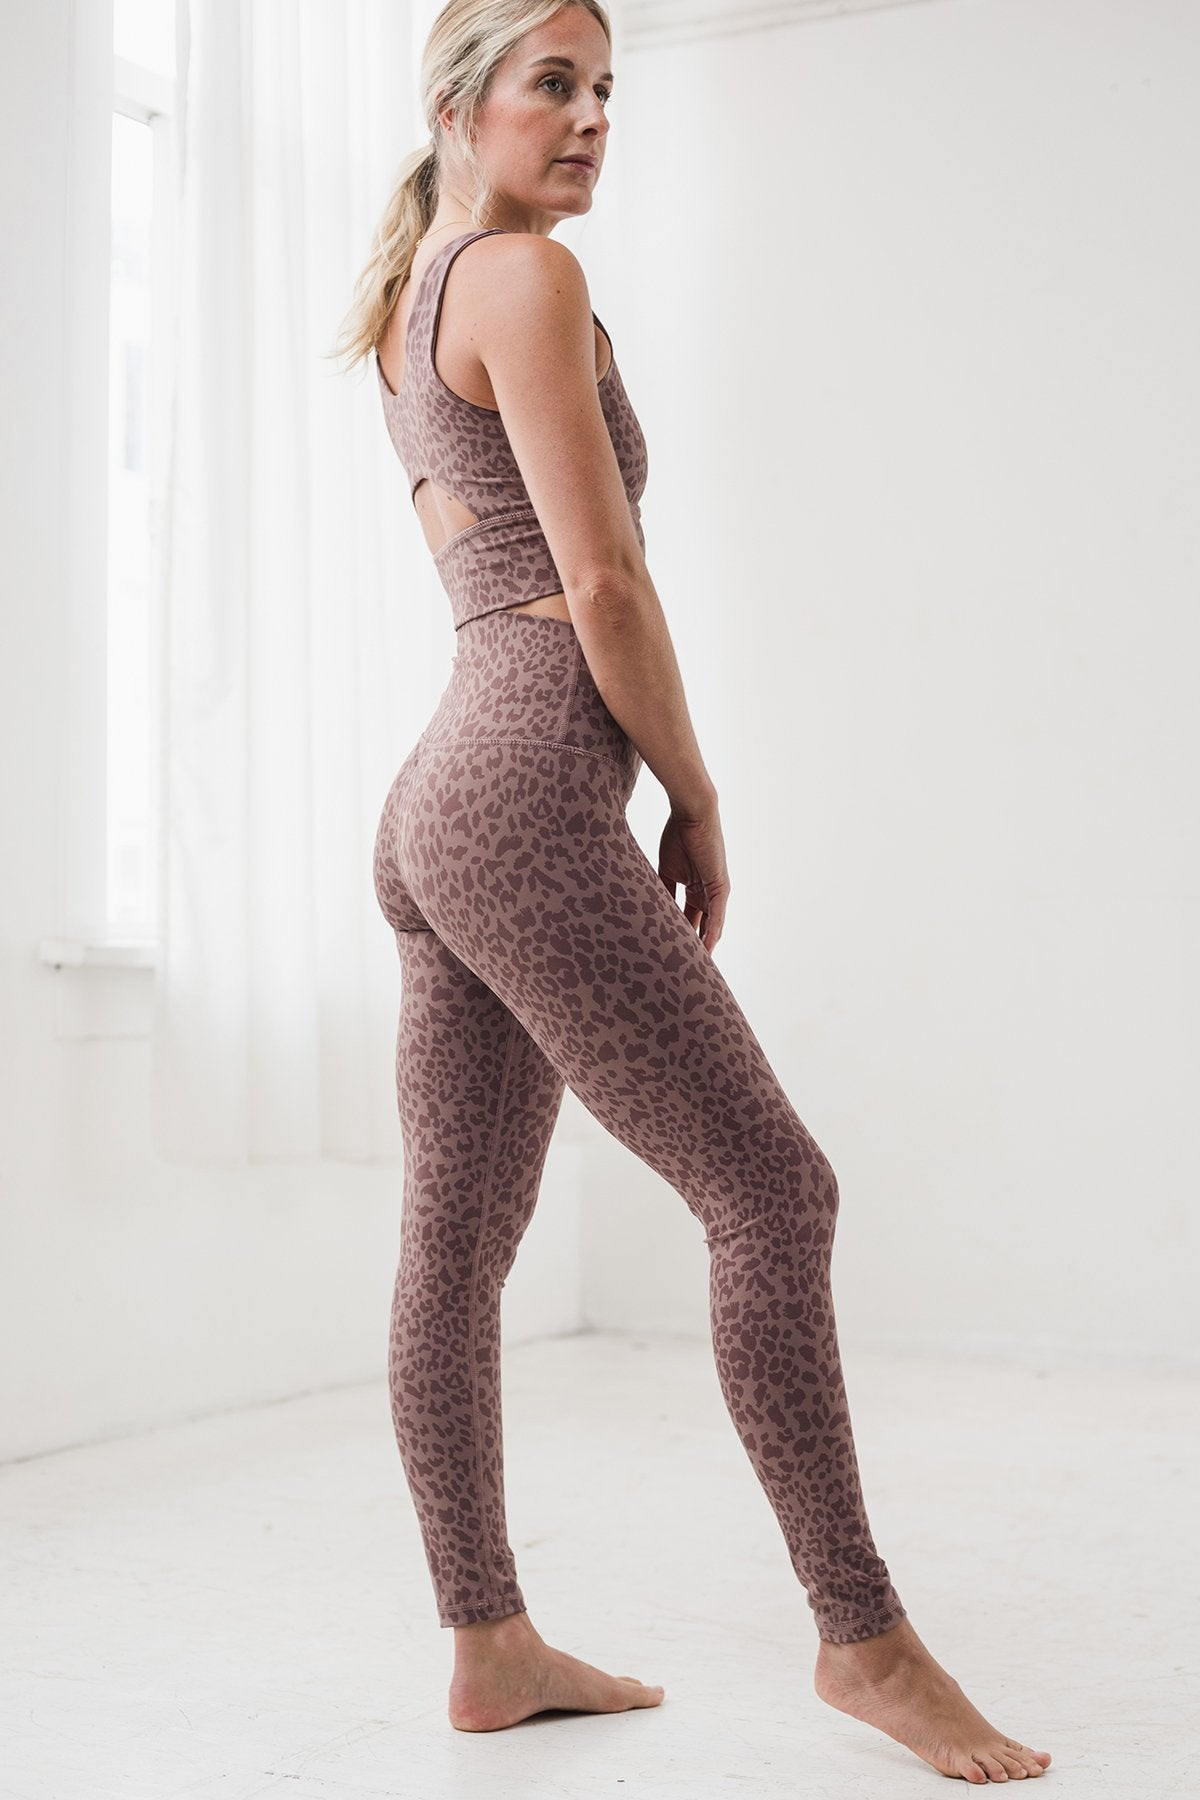 Printed Signature Tight Taupe Leopard Spots, Printed TIght - shopdyi.com